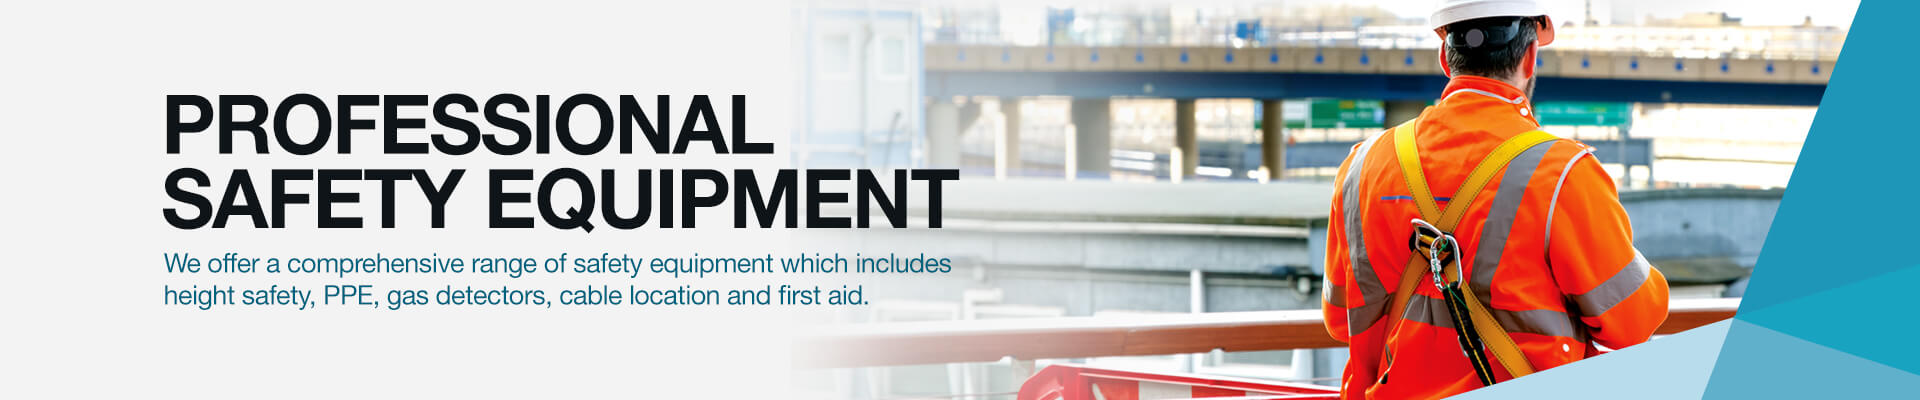 High-quality safety solutions from leading manufacturers